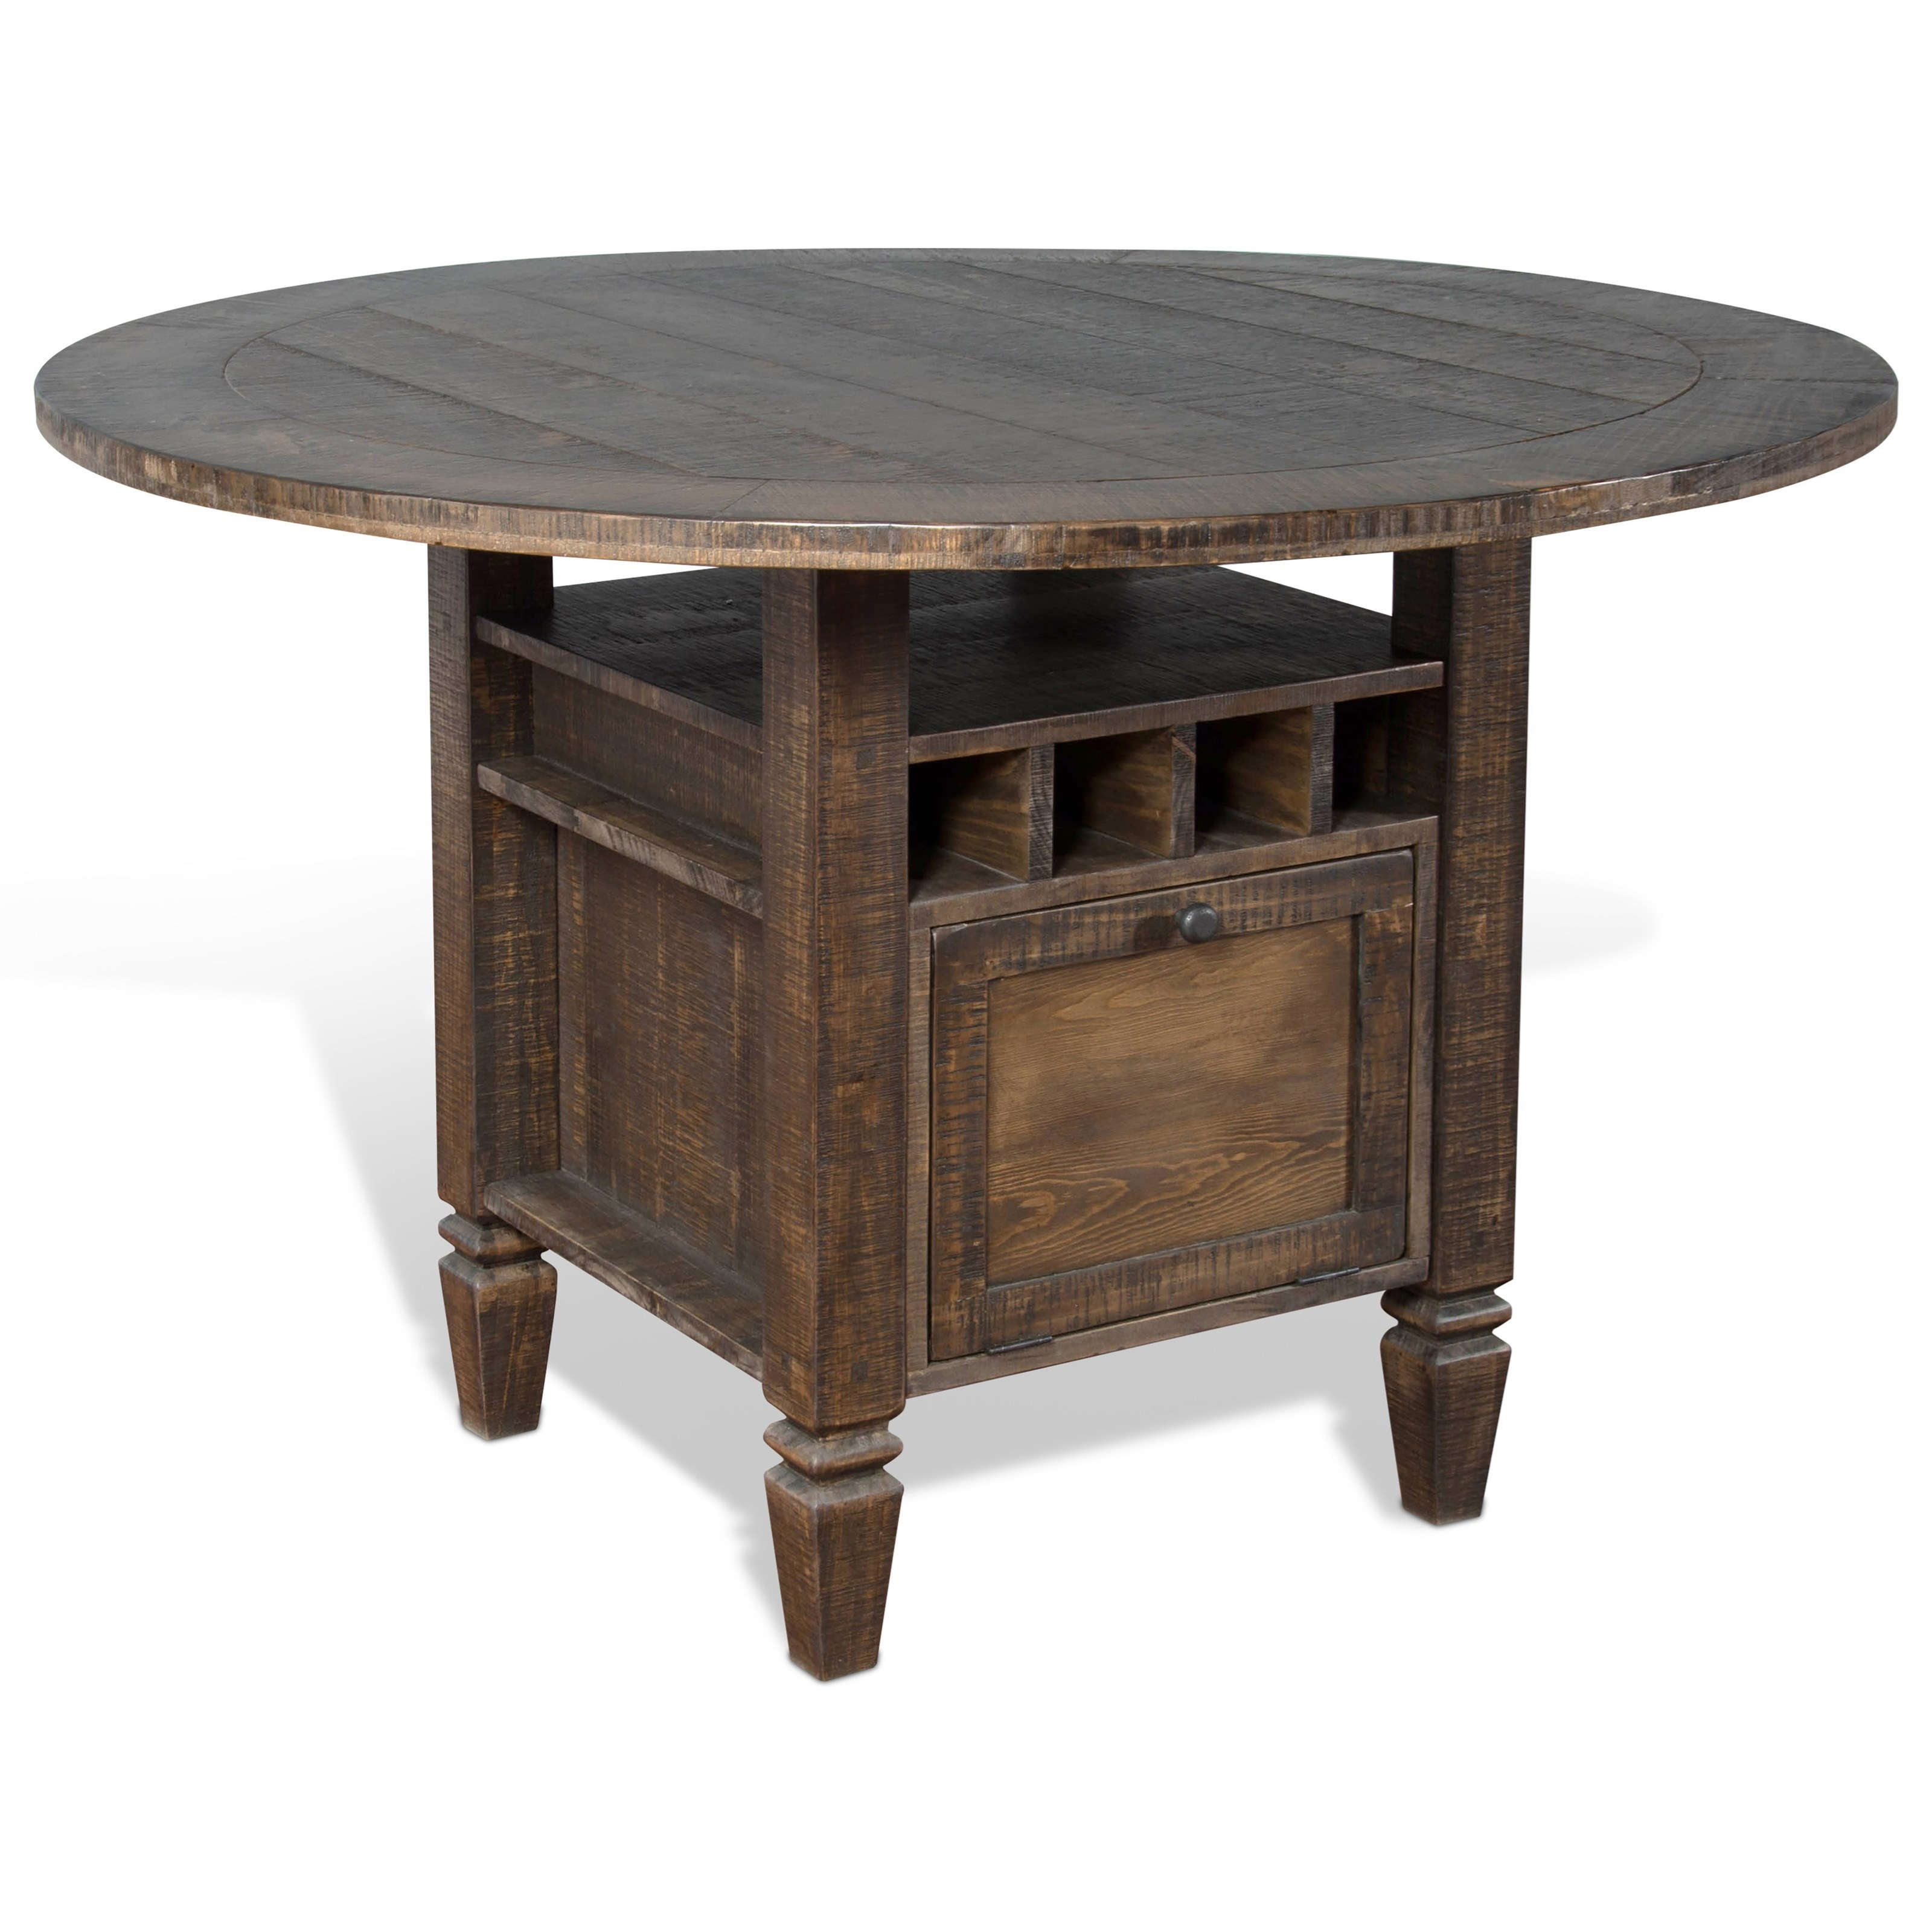 Sunny Designs Homestead Round Counter Height Table With Storage